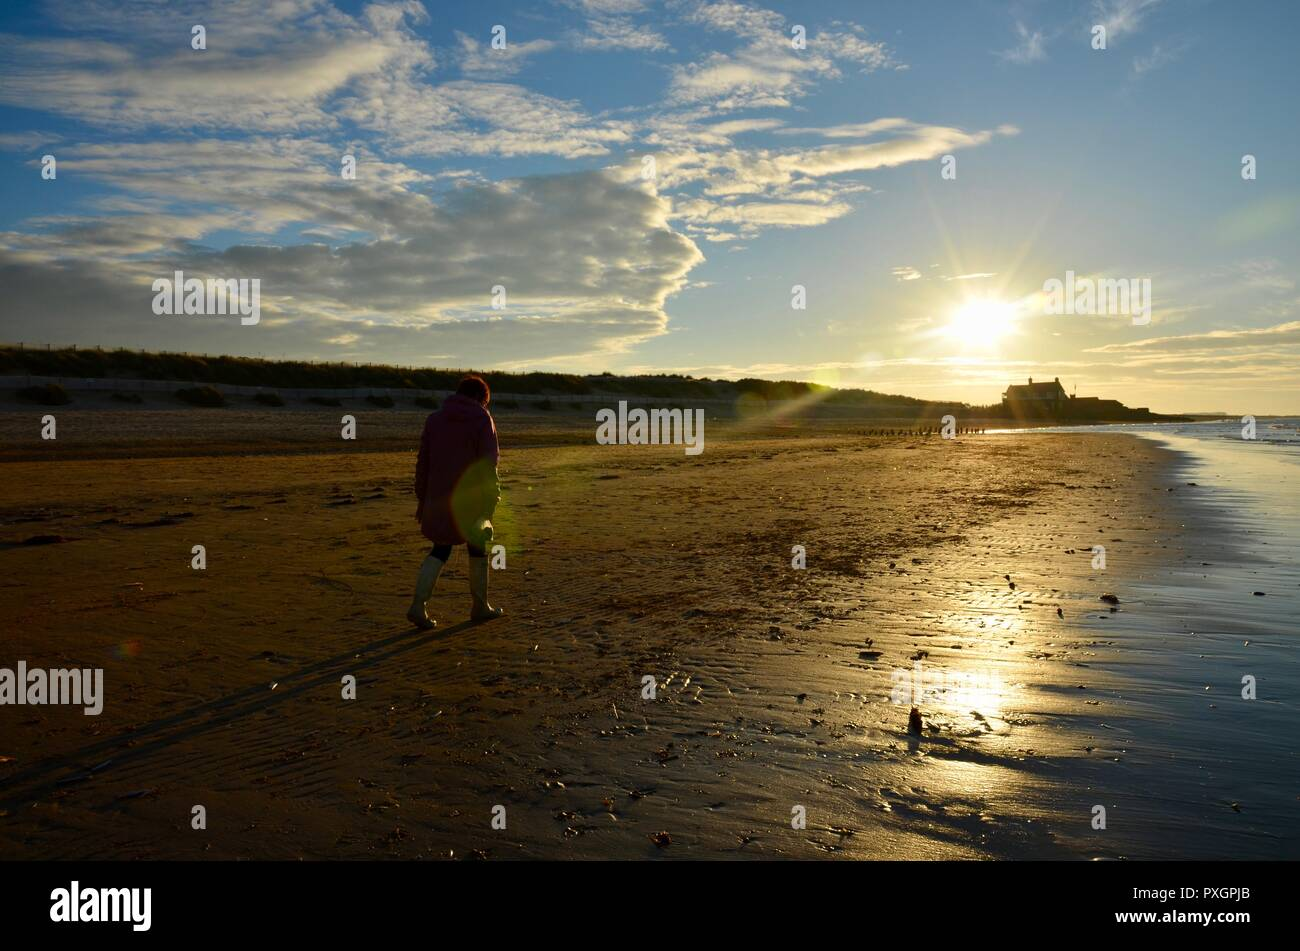 Woman walking alone on Brancaster beach at sunset on a bright autumn day, Norfolk, East Anglia, UK. - Stock Image